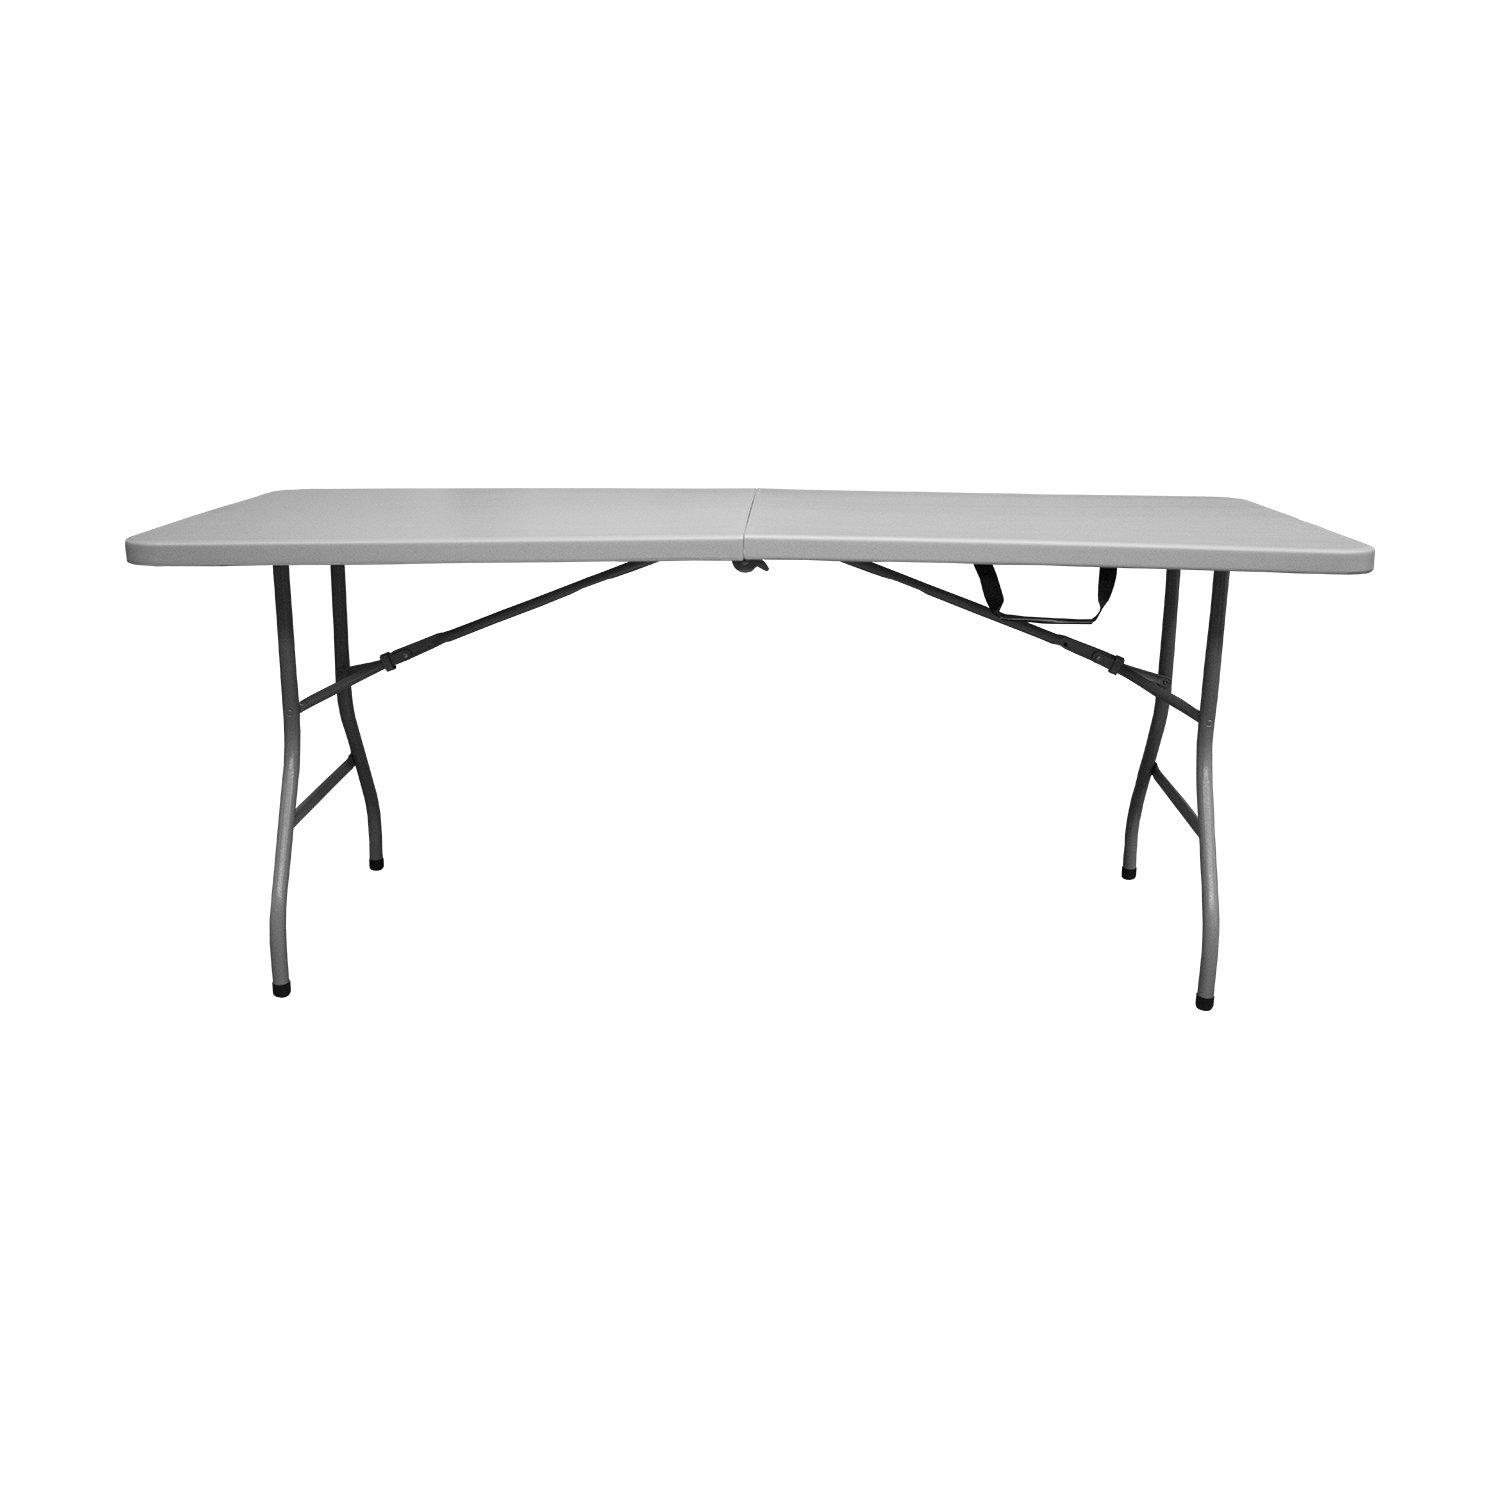 Snap Drape Table In A Snap   6 Foot 400 Lb Capacity Center Folding Table ...